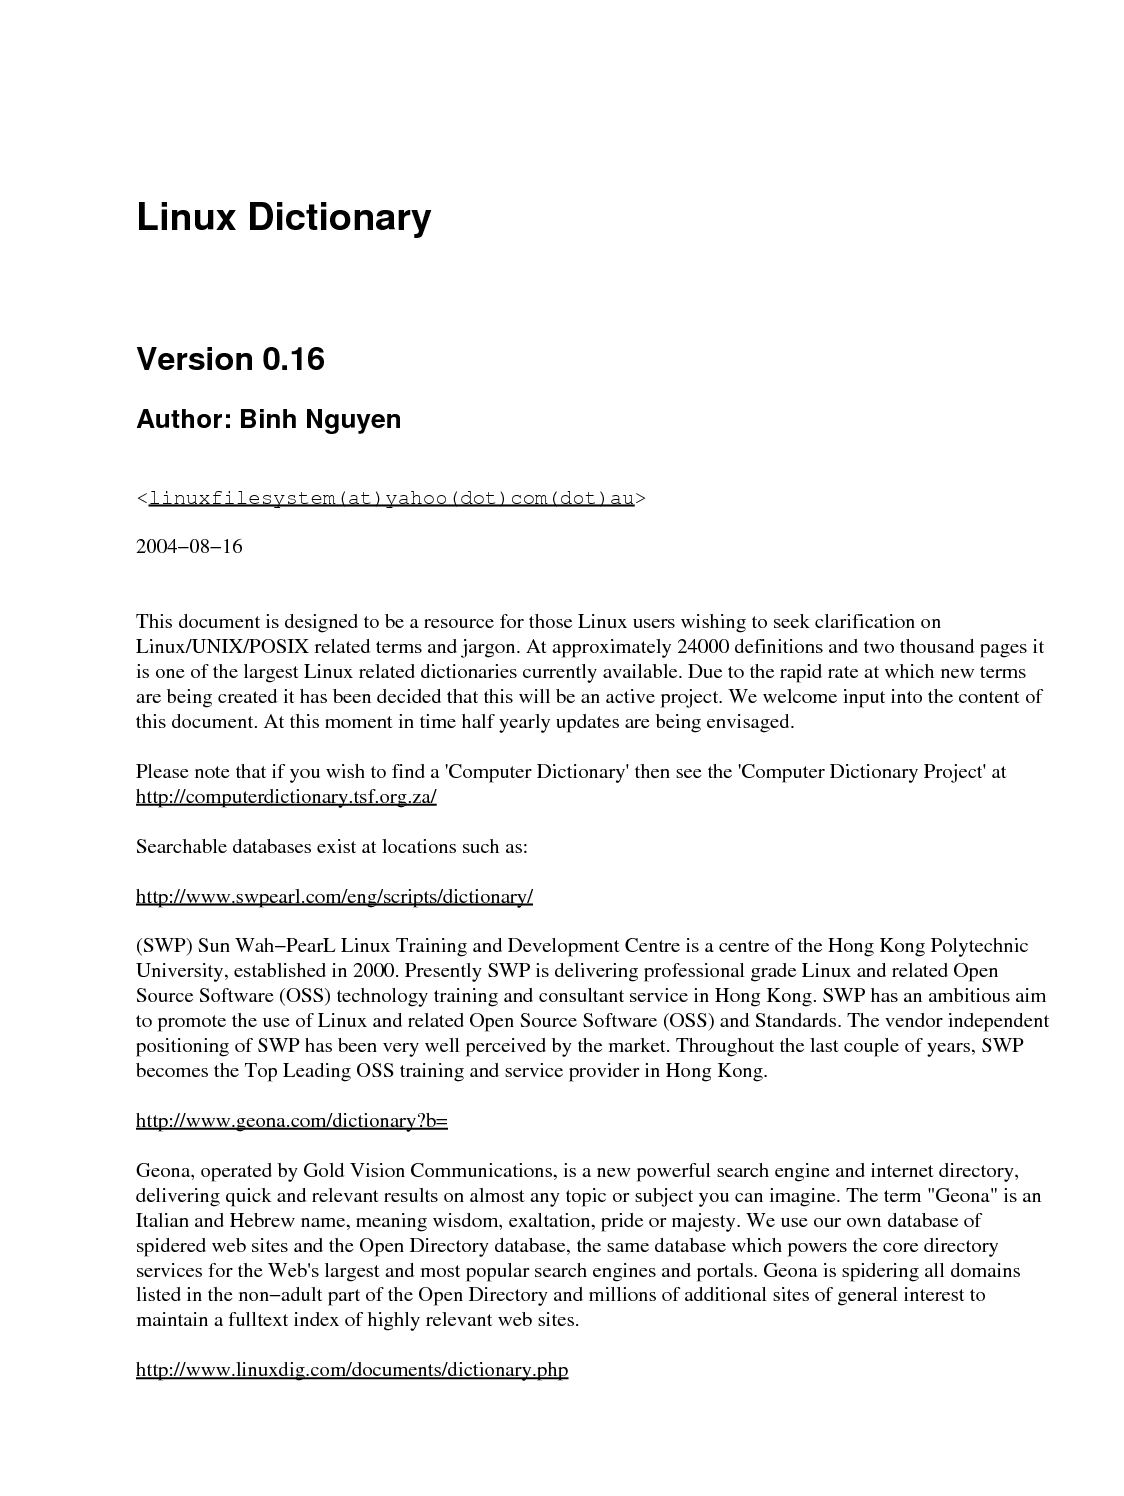 Calamo Linux Dictionary Fileclassical 7circuit Labyrinthsvg Wikipedia The Free